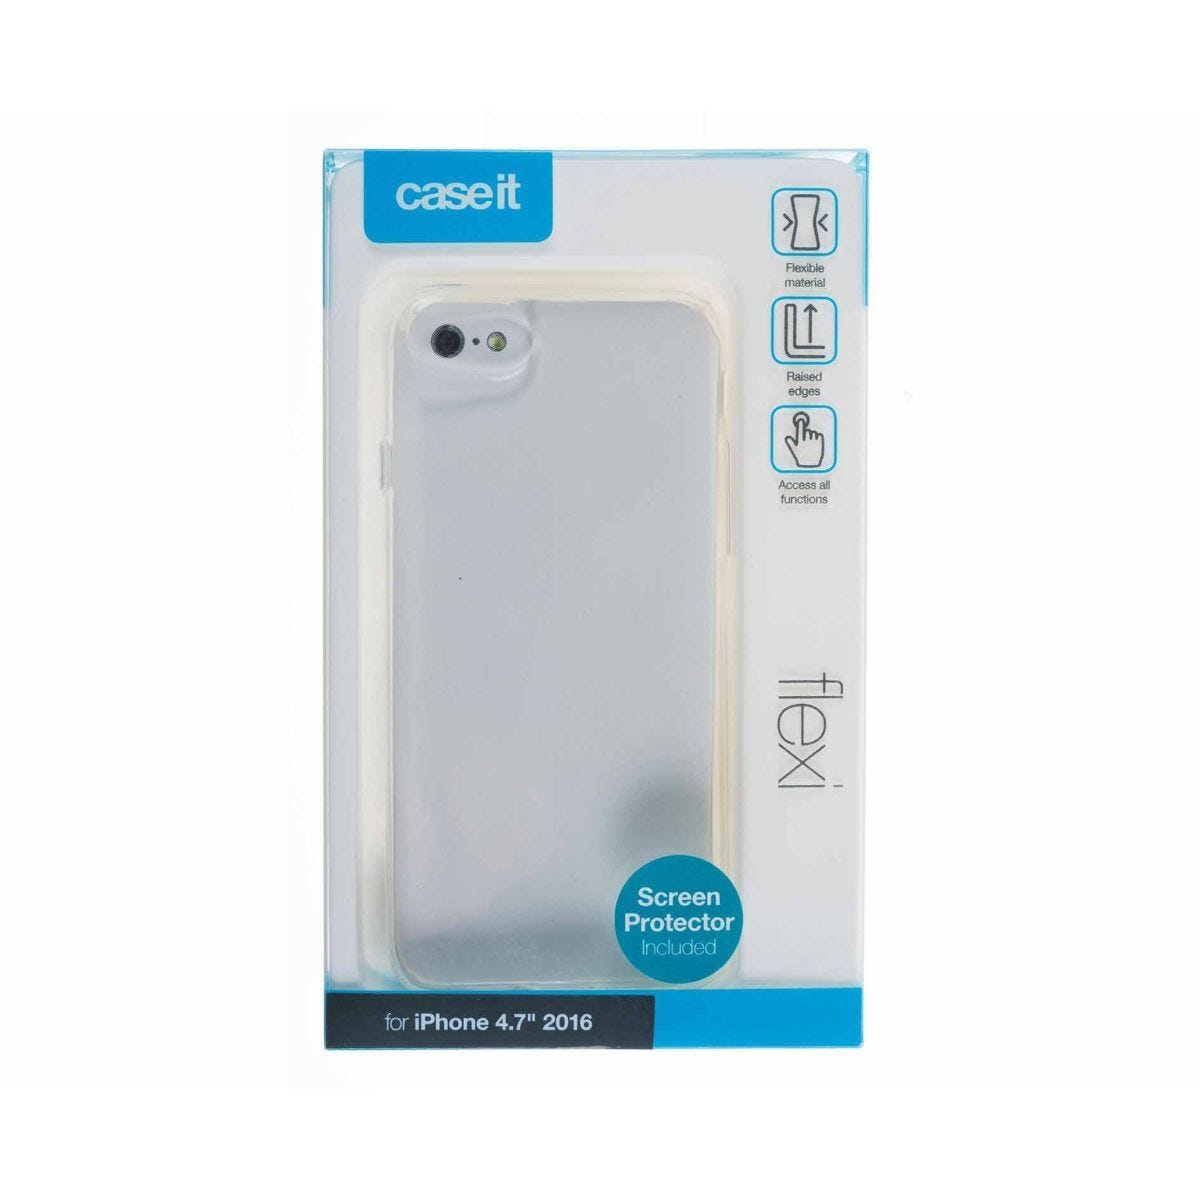 Case it iPhone 6/7/8 Protective Case